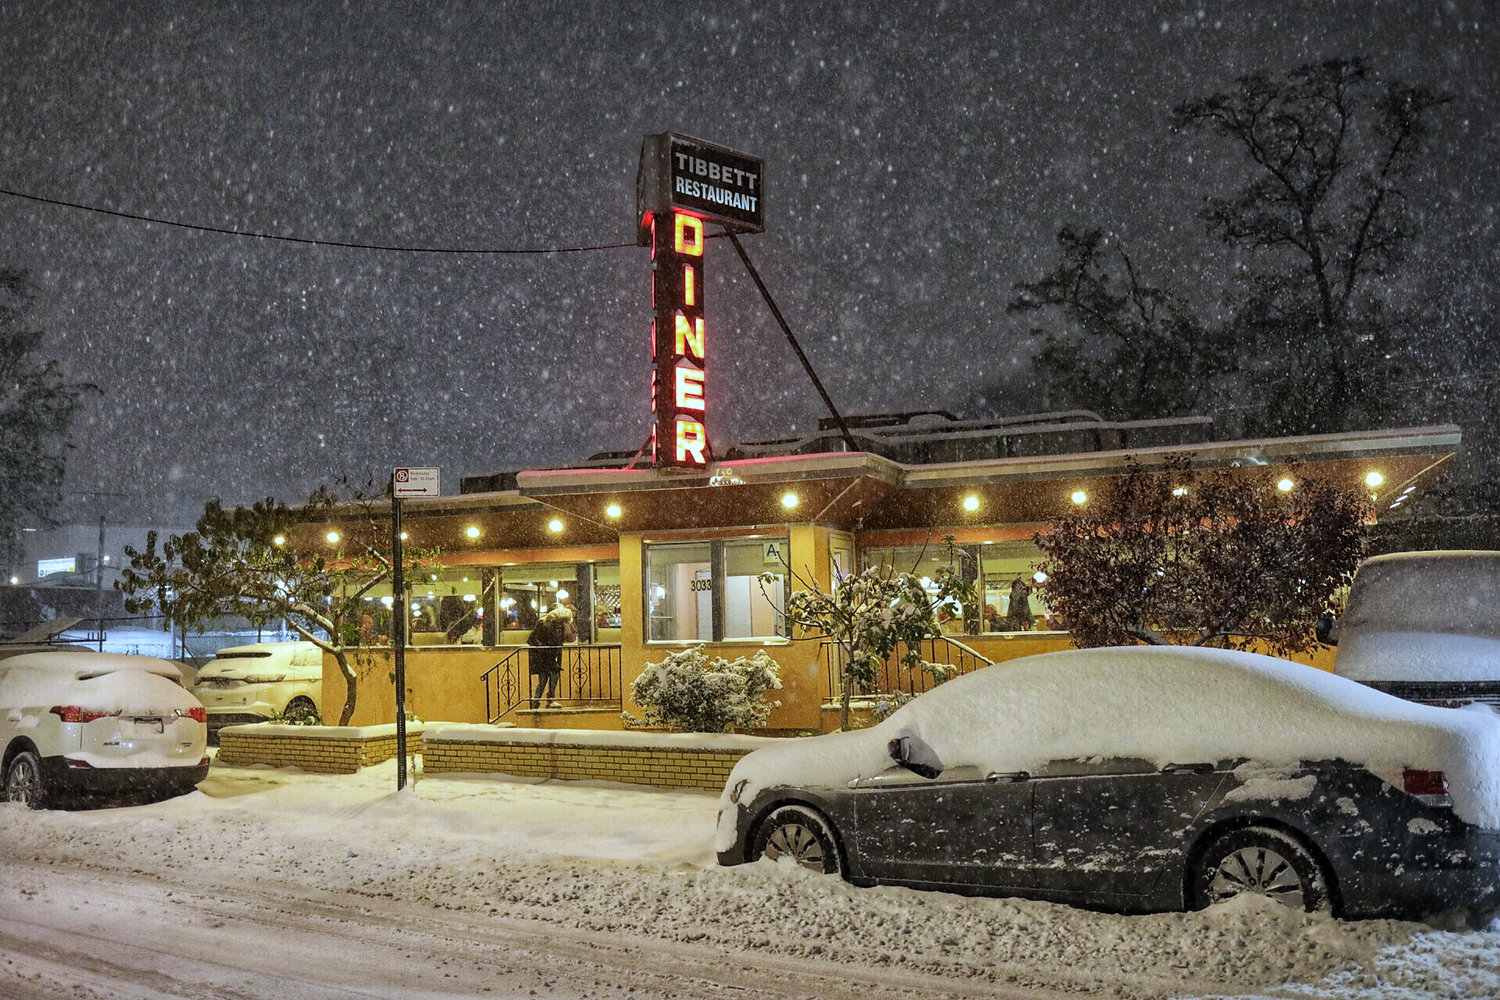 Tibbett Diner stands as a promise of a warm meal during the first snow of the season.